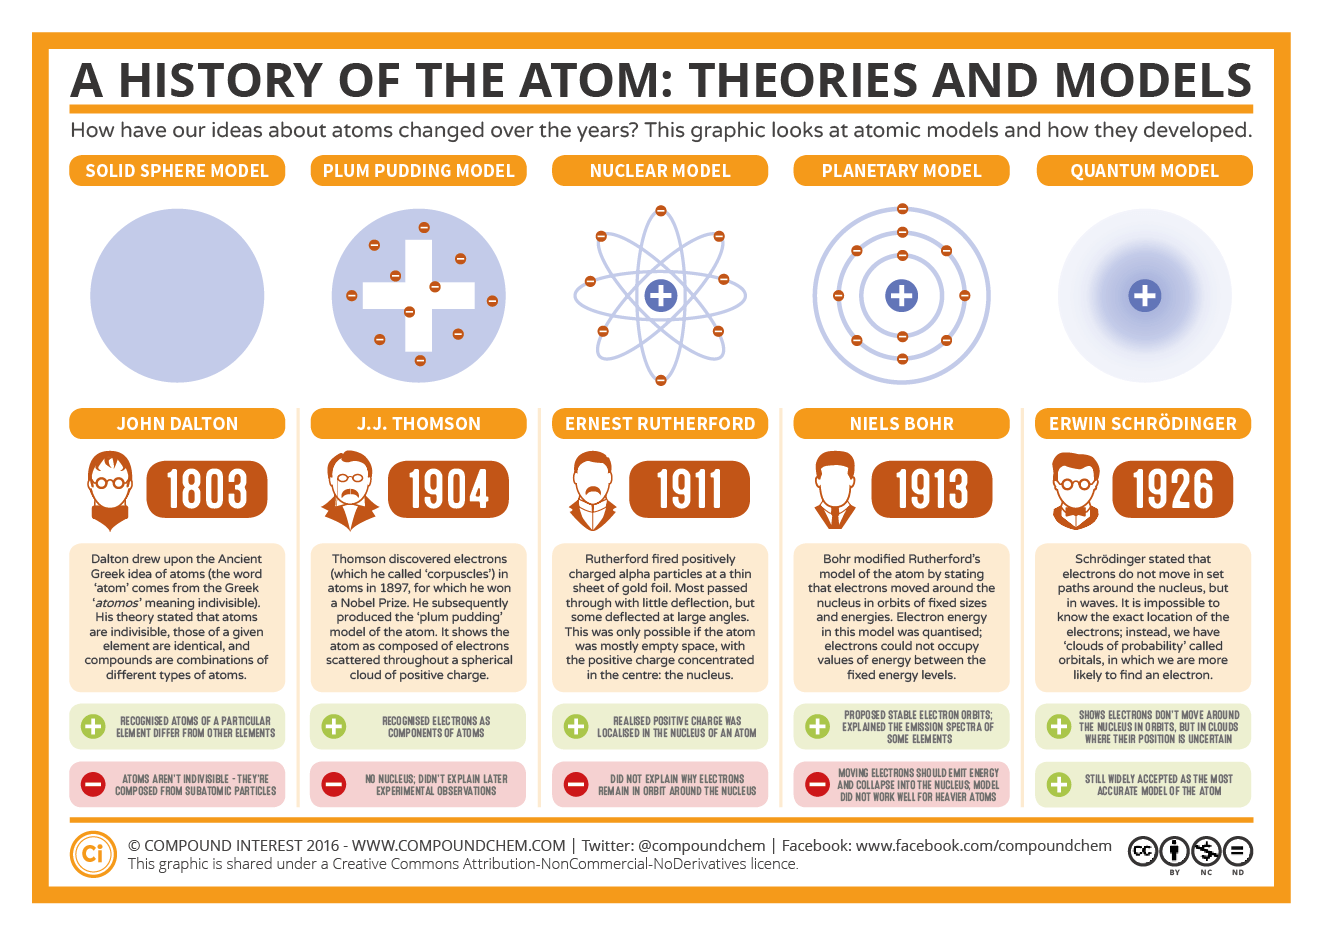 Comparison of Sytems and Scientific Theories